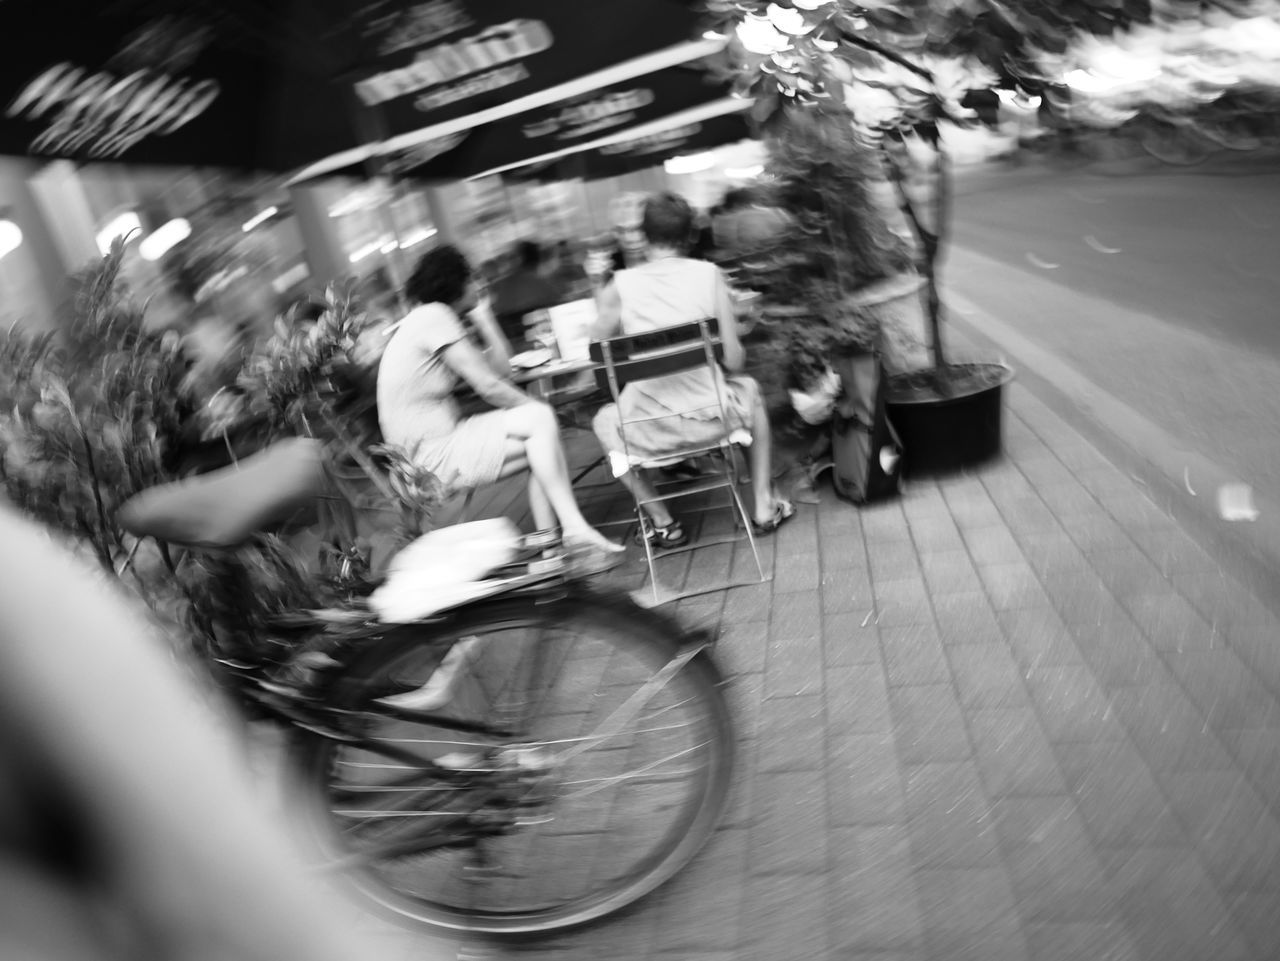 City Life Day Outdoors Selective Focus Streetphoto_bw Streetphotography Swirl Tranquility People And Places Swirly Street Photography Streetlife CyclingUnites Enjoy The New Normal Finding New Frontiers